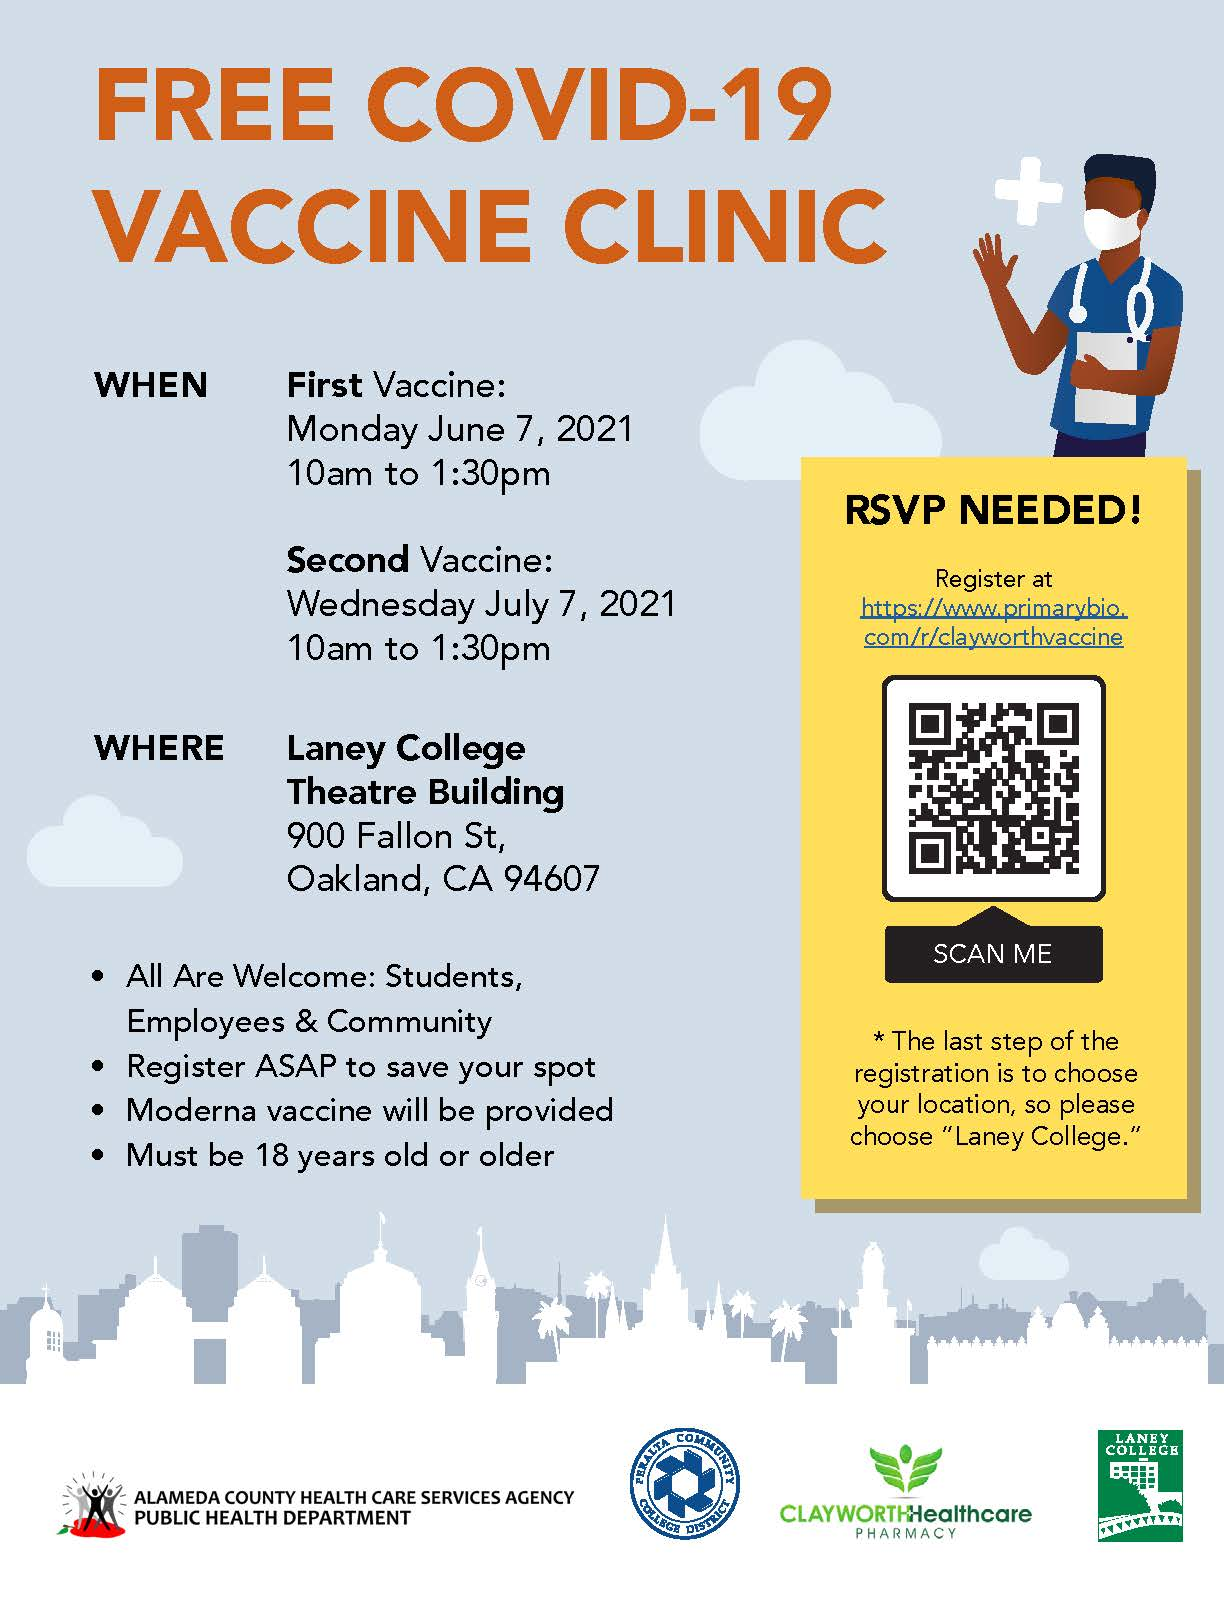 Vaccine Clinic - Get Vaxxed! @ Laney College